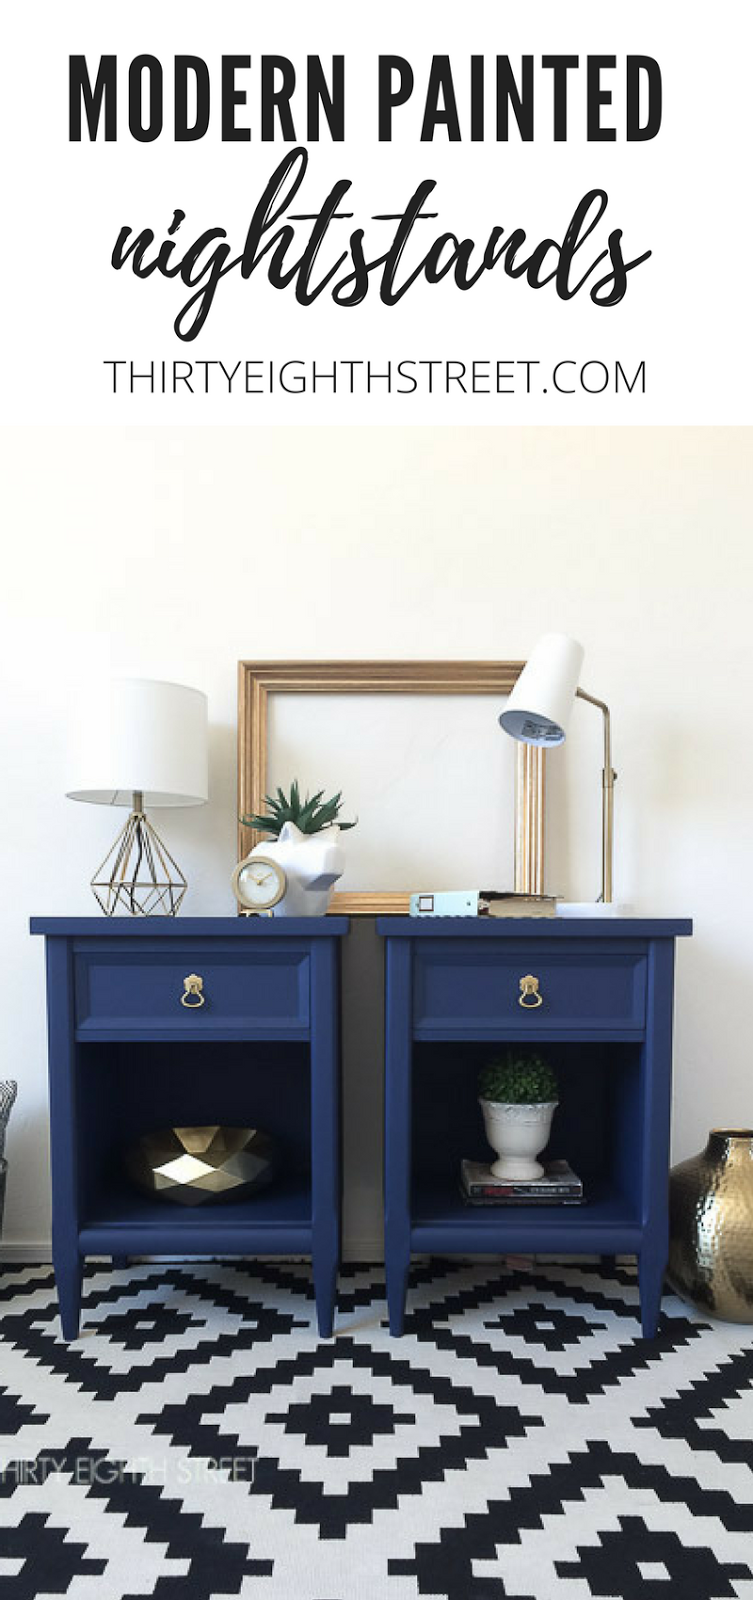 nightstand paint makeover, end table makeovers, side table makeovers, before and after furniture, painted furniture ideas, nightstand ideas, bright nightstands, blue nightstands